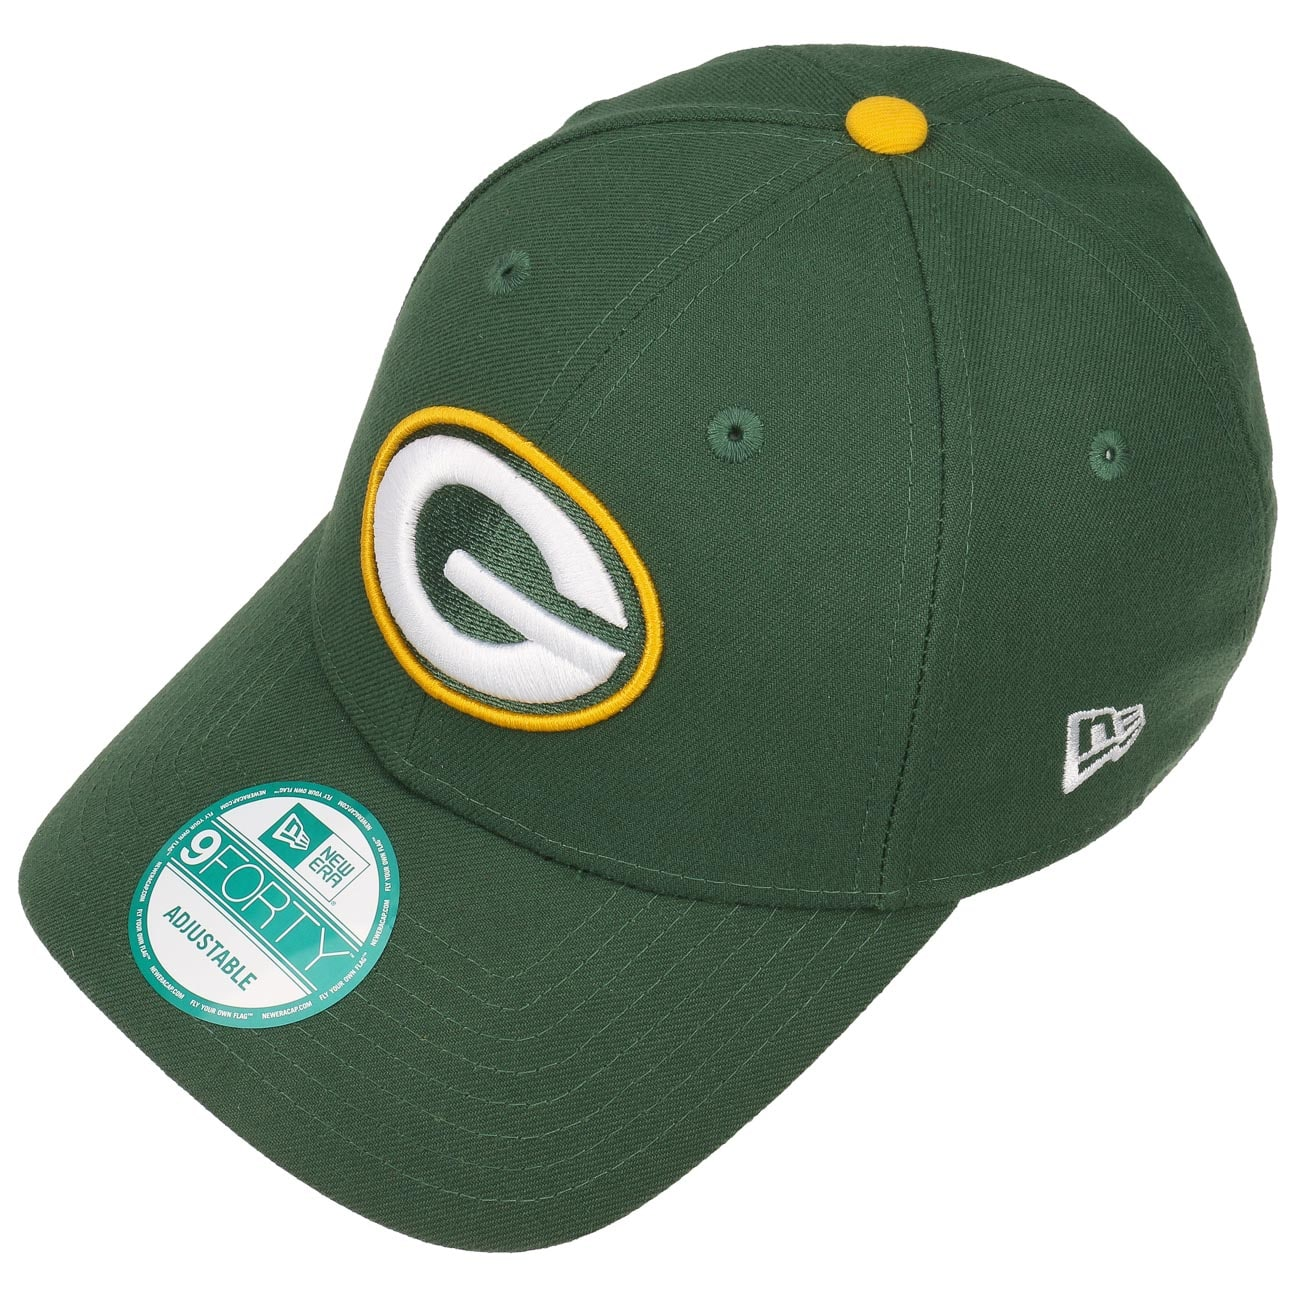 4faf106d633 sweden 9forty green bay packers cap by new era green 2 04ca4 1ca9e